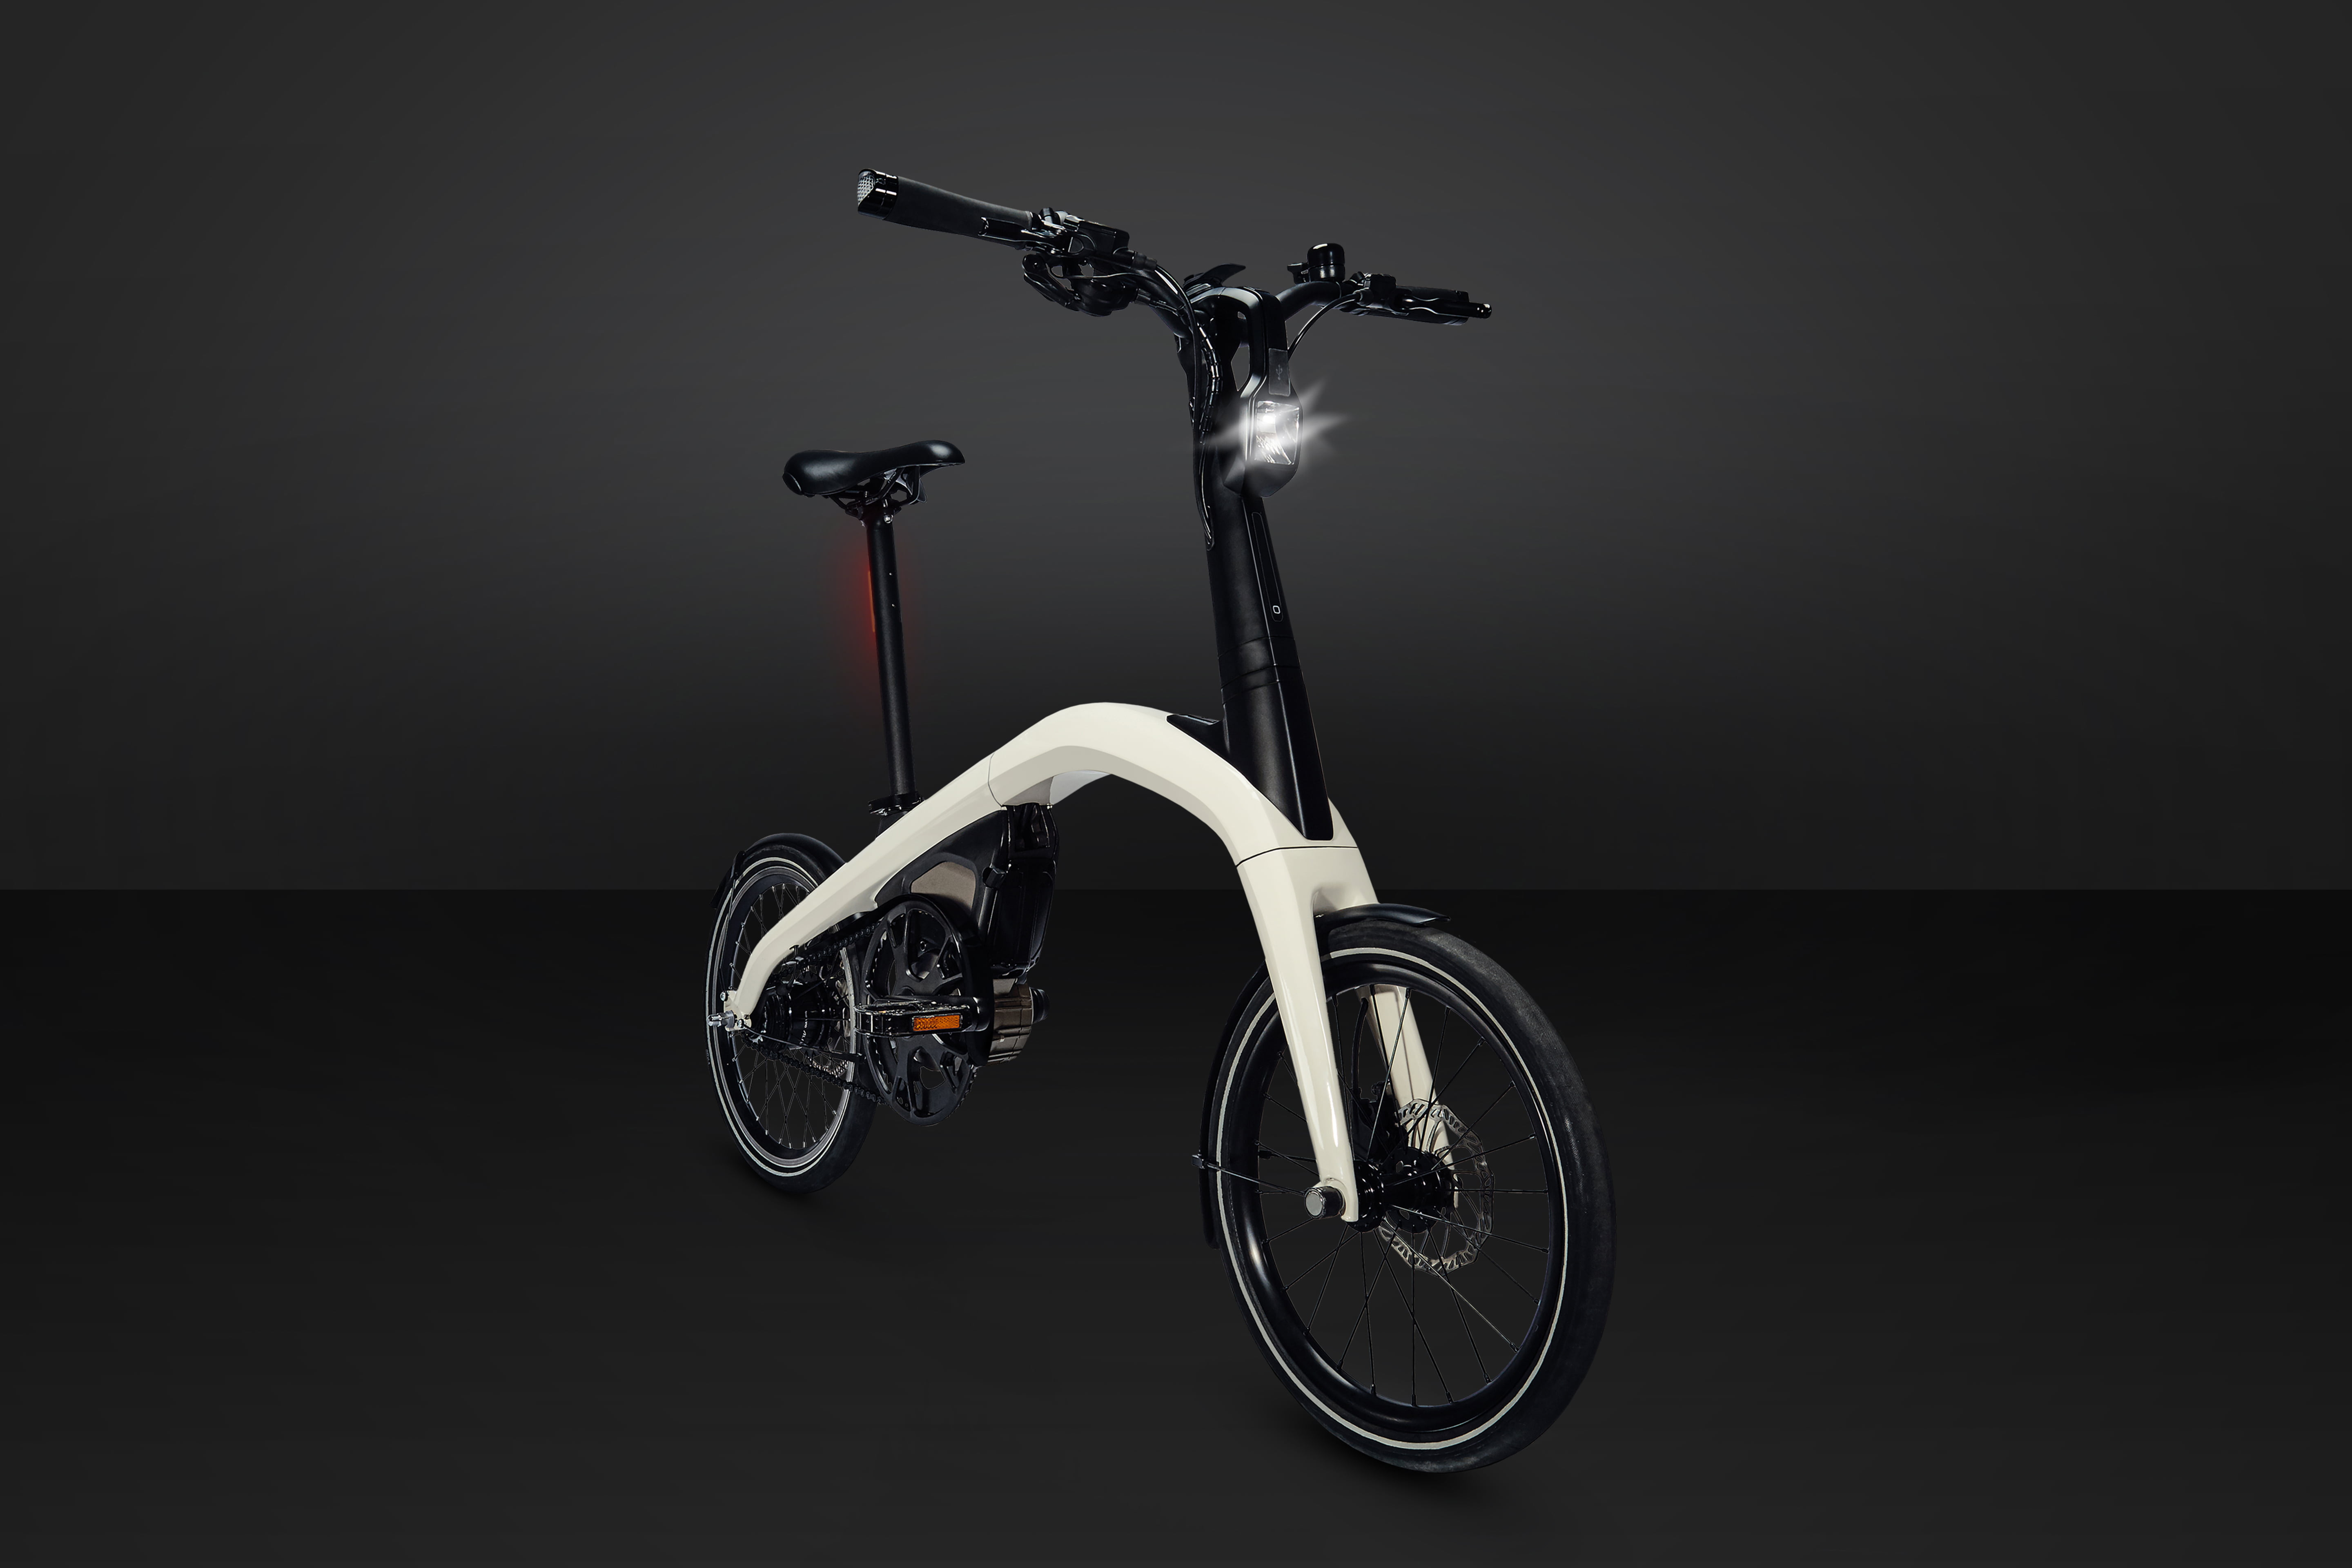 General Motors to launch foldable electric bikes next year